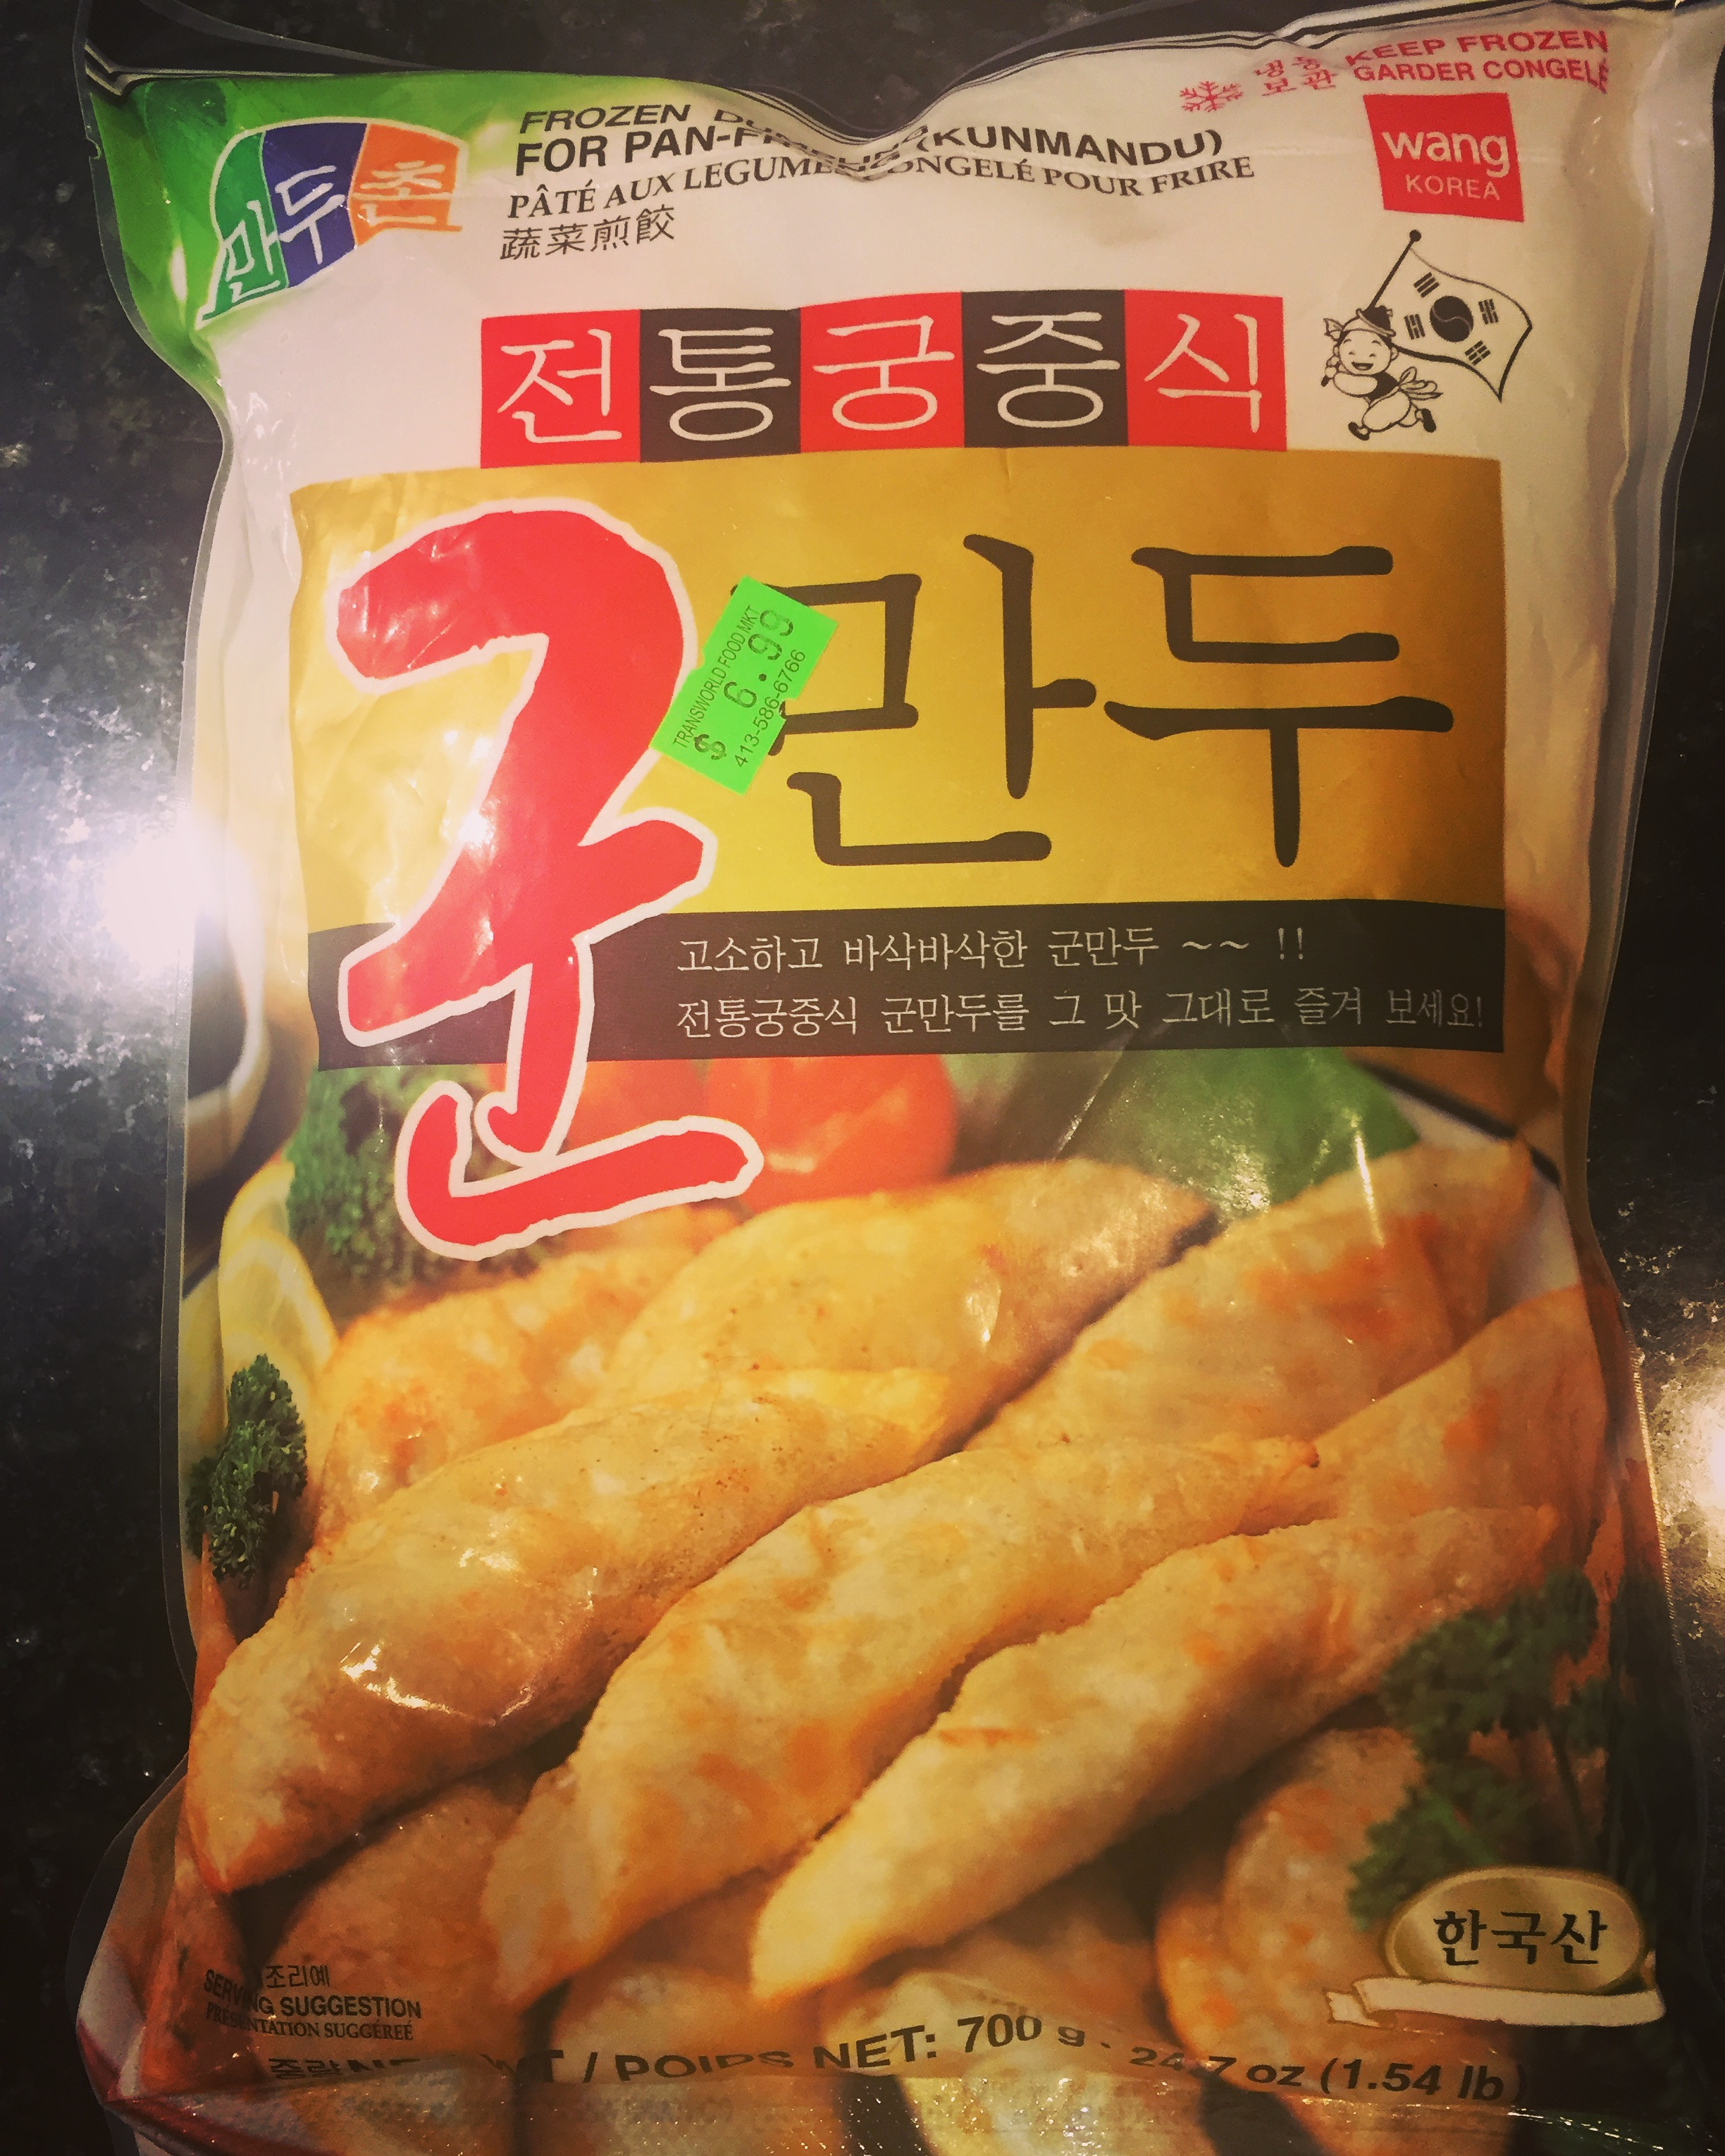 Wang Foods Frozen Dumplings For Pan Frying Kunmandu